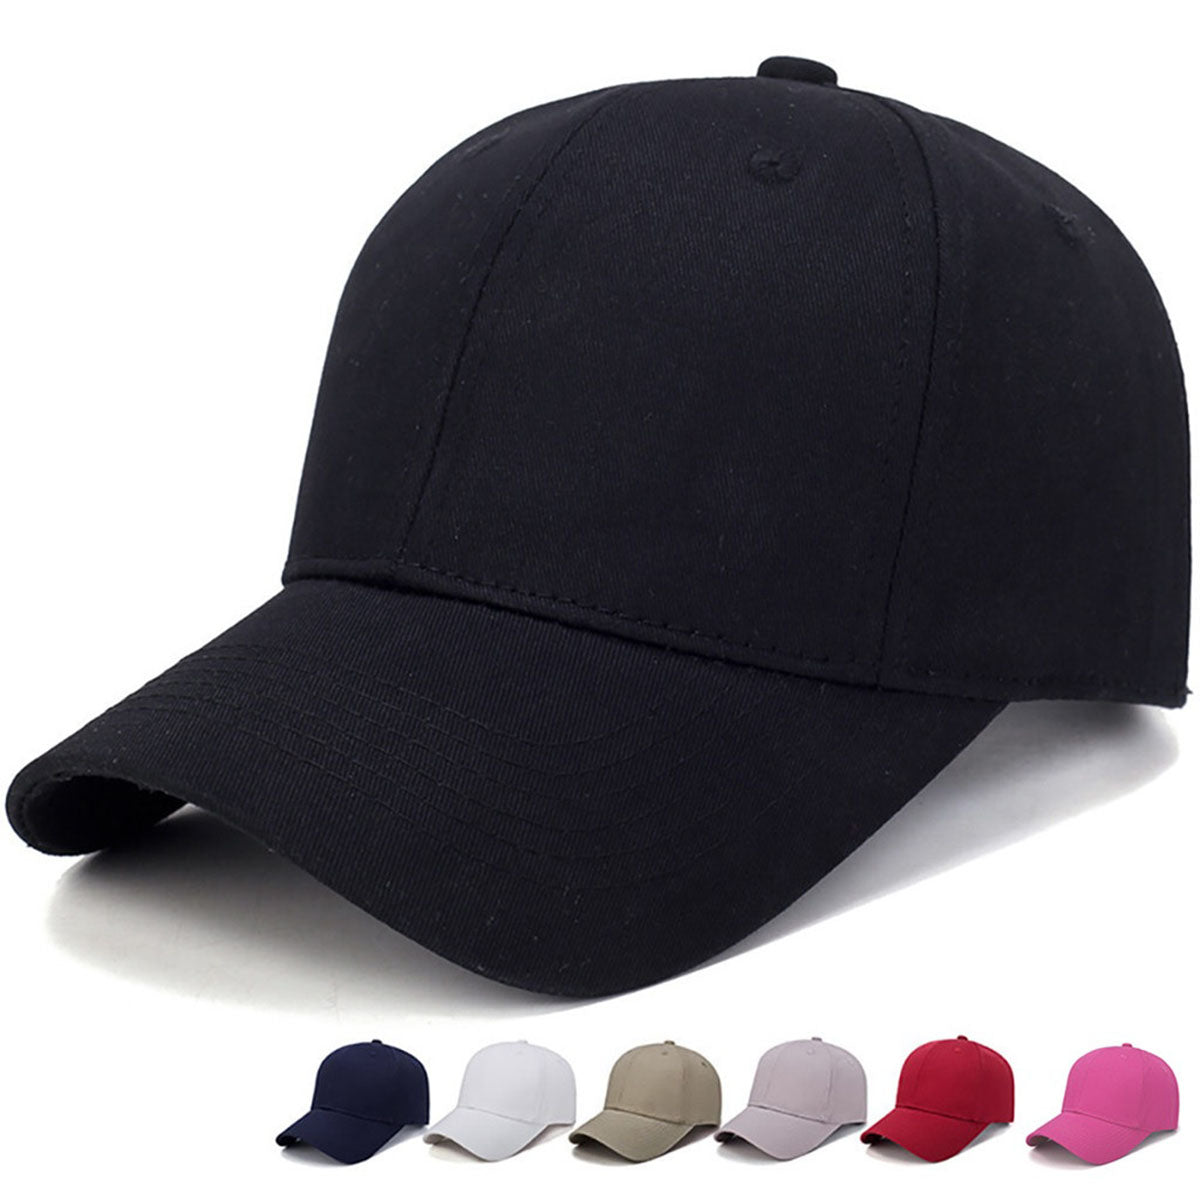 Curved Sun Visor Adjustable Men Hat